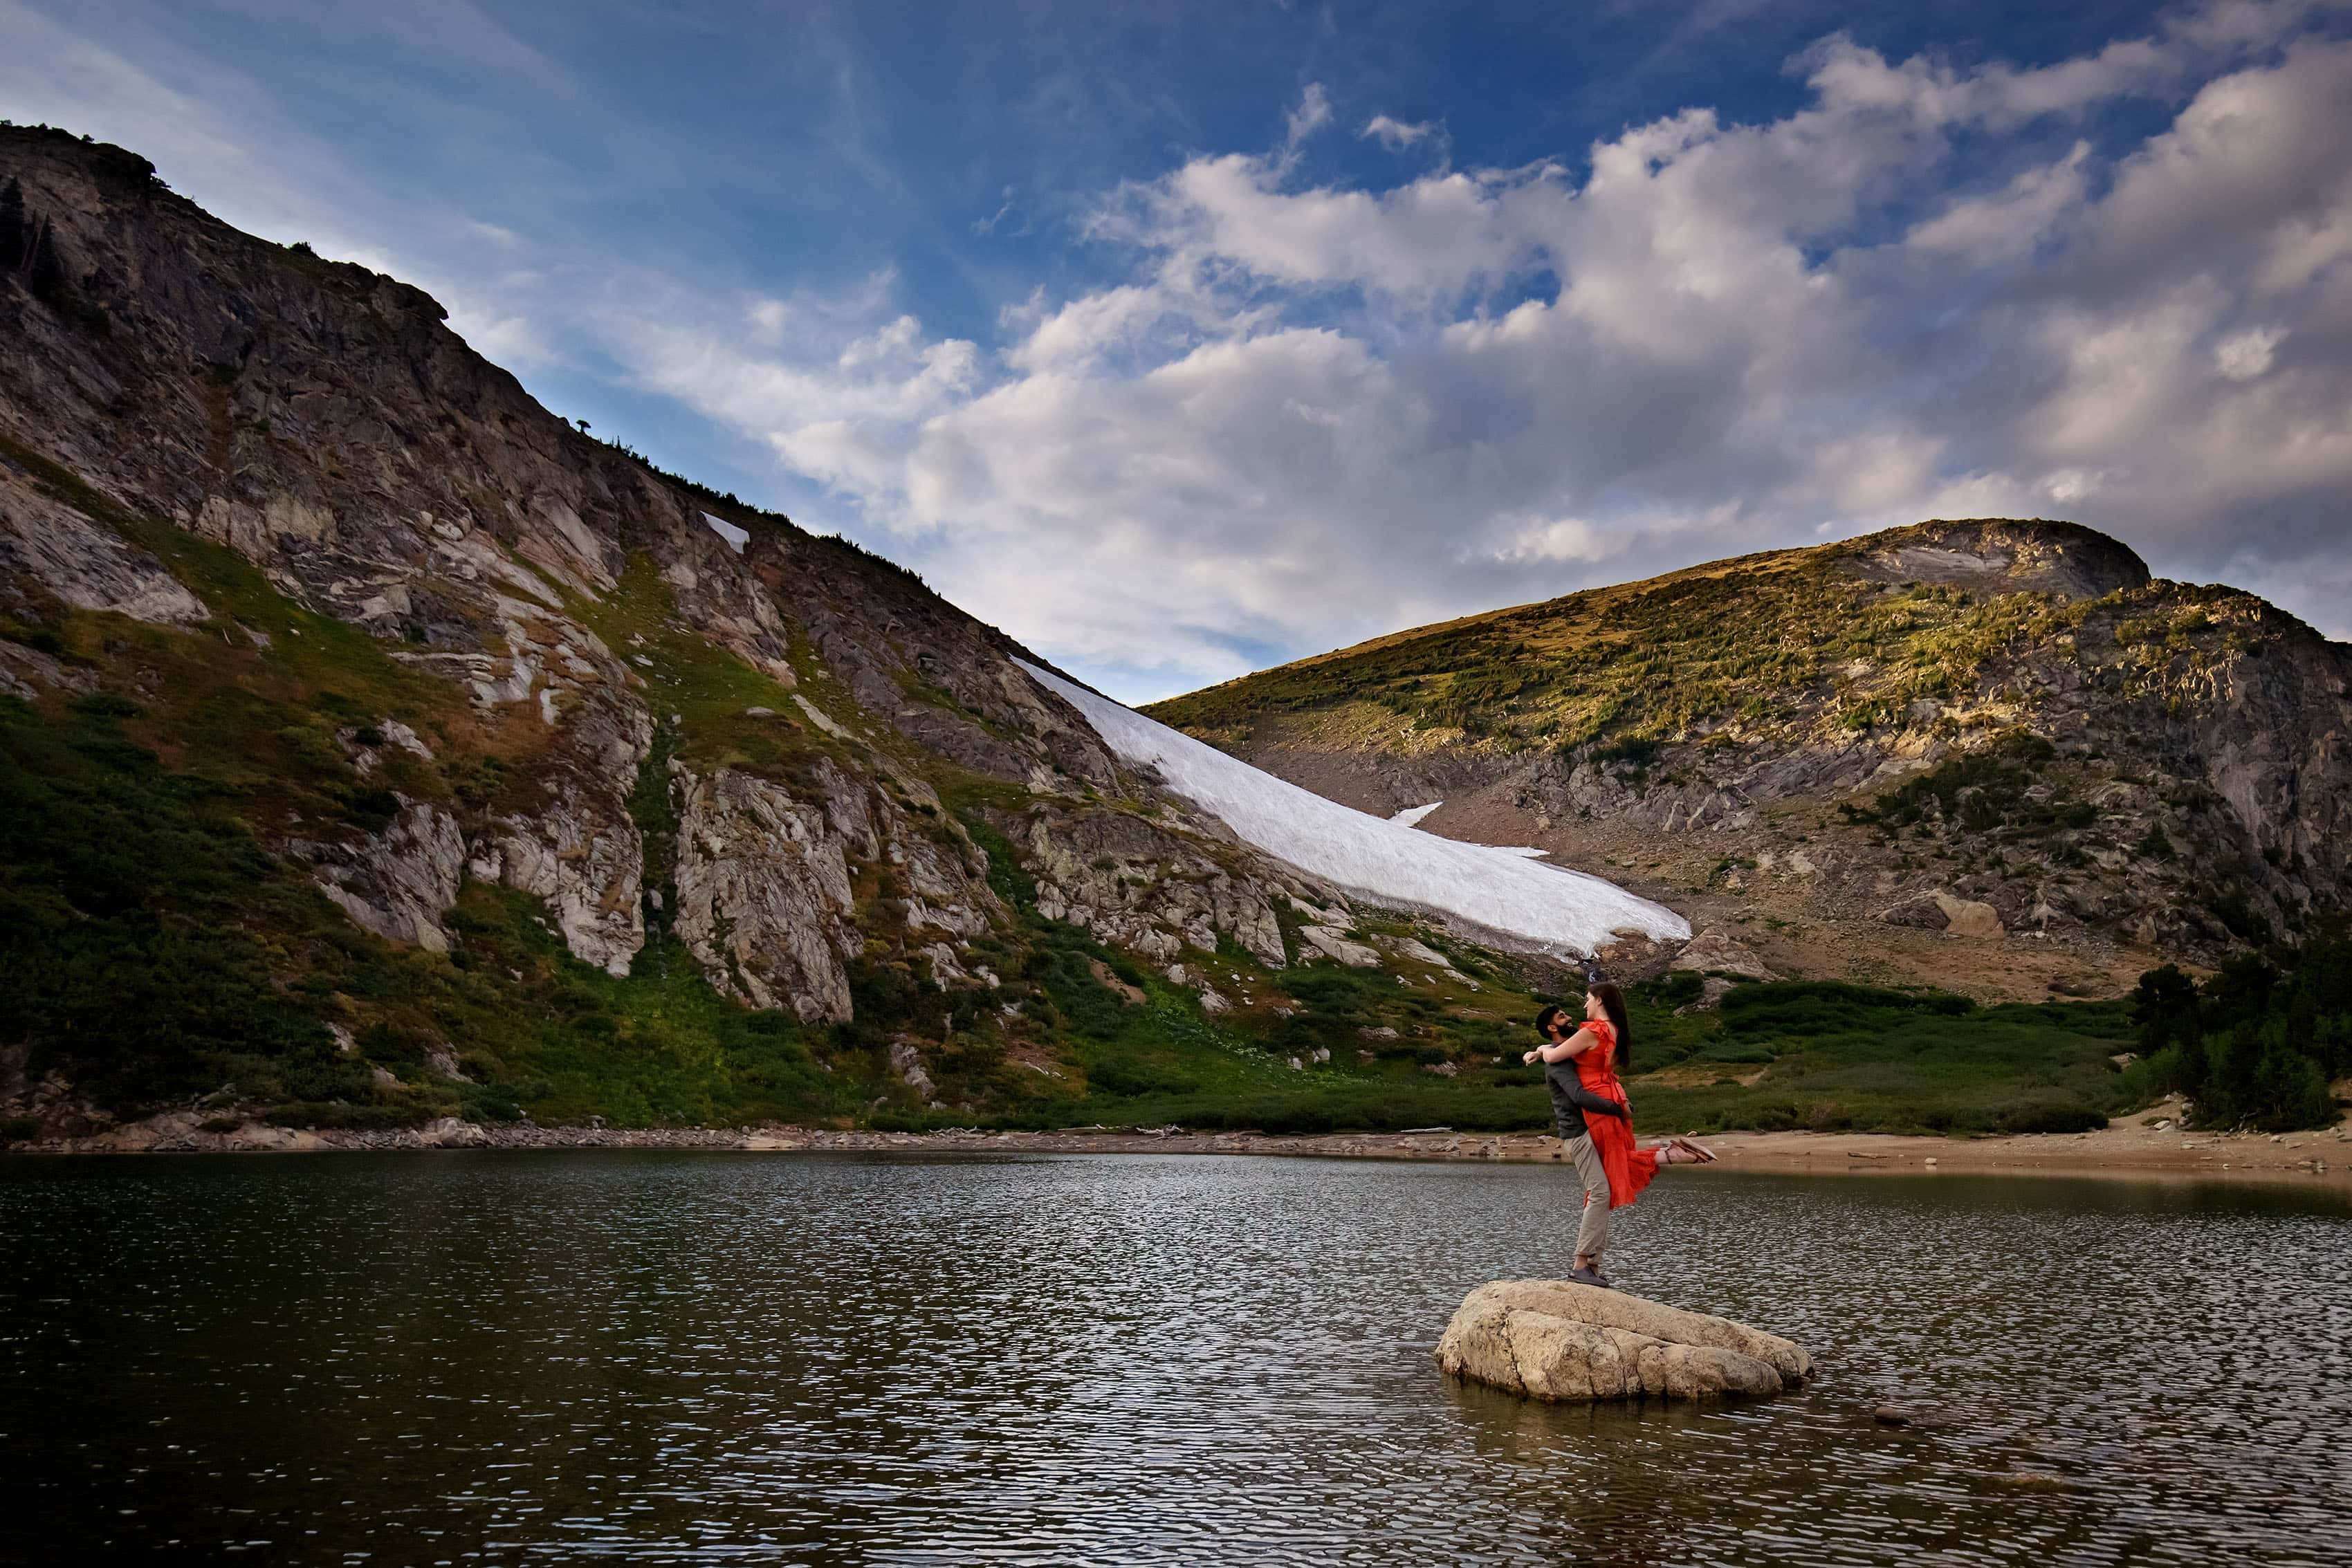 Moypa picks up Kara on a rock in the pond at St. Mary's Glacier during their engagement session